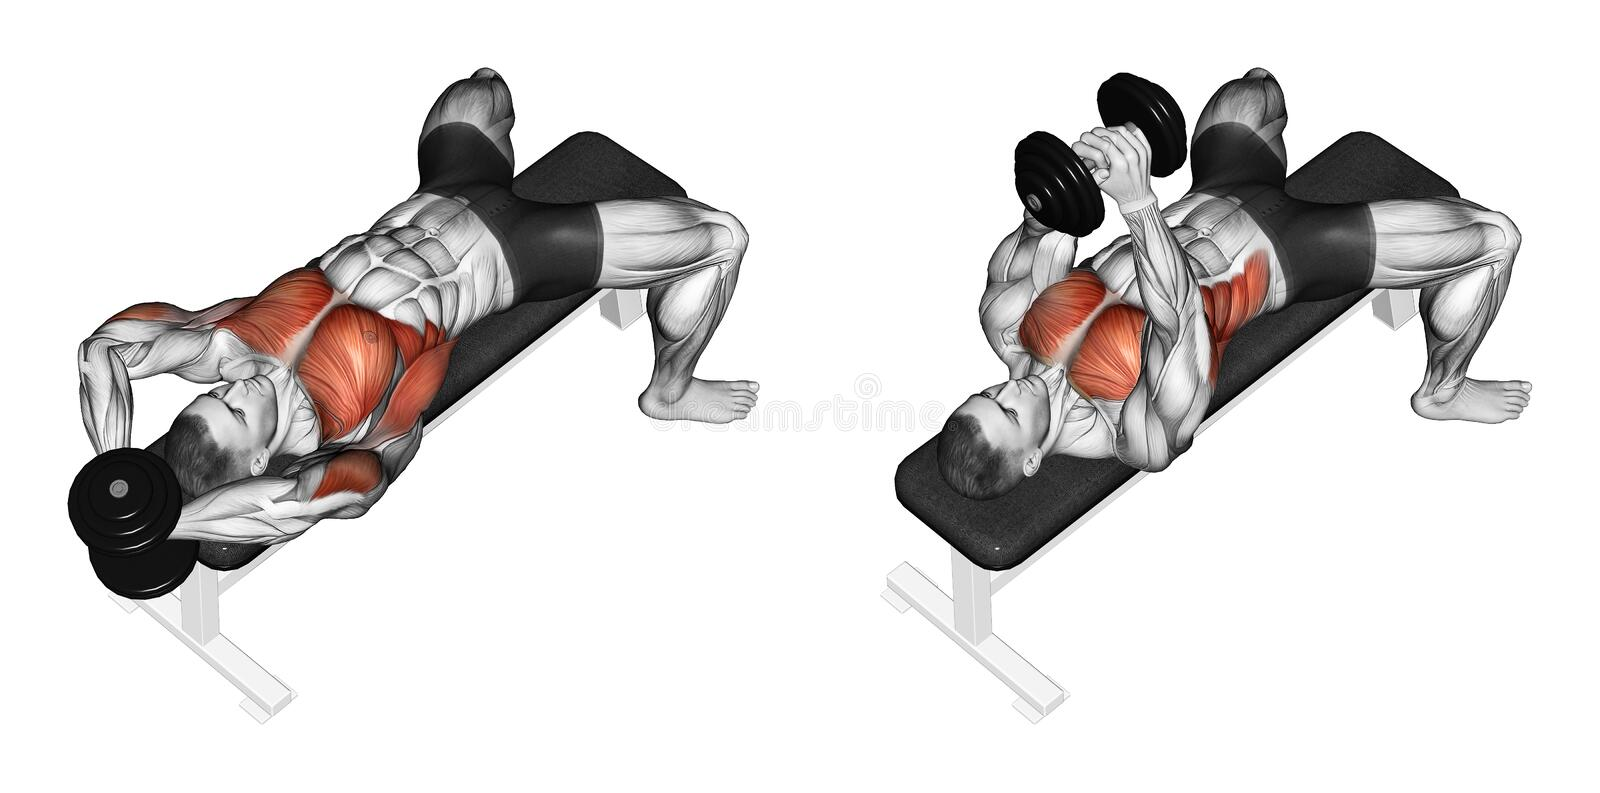 Exercising. Link dumbbells from behind the head. Link dumbbells from behind the head. Exercising for bodybuilding Target muscles are marked in red. Initial and stock illustration